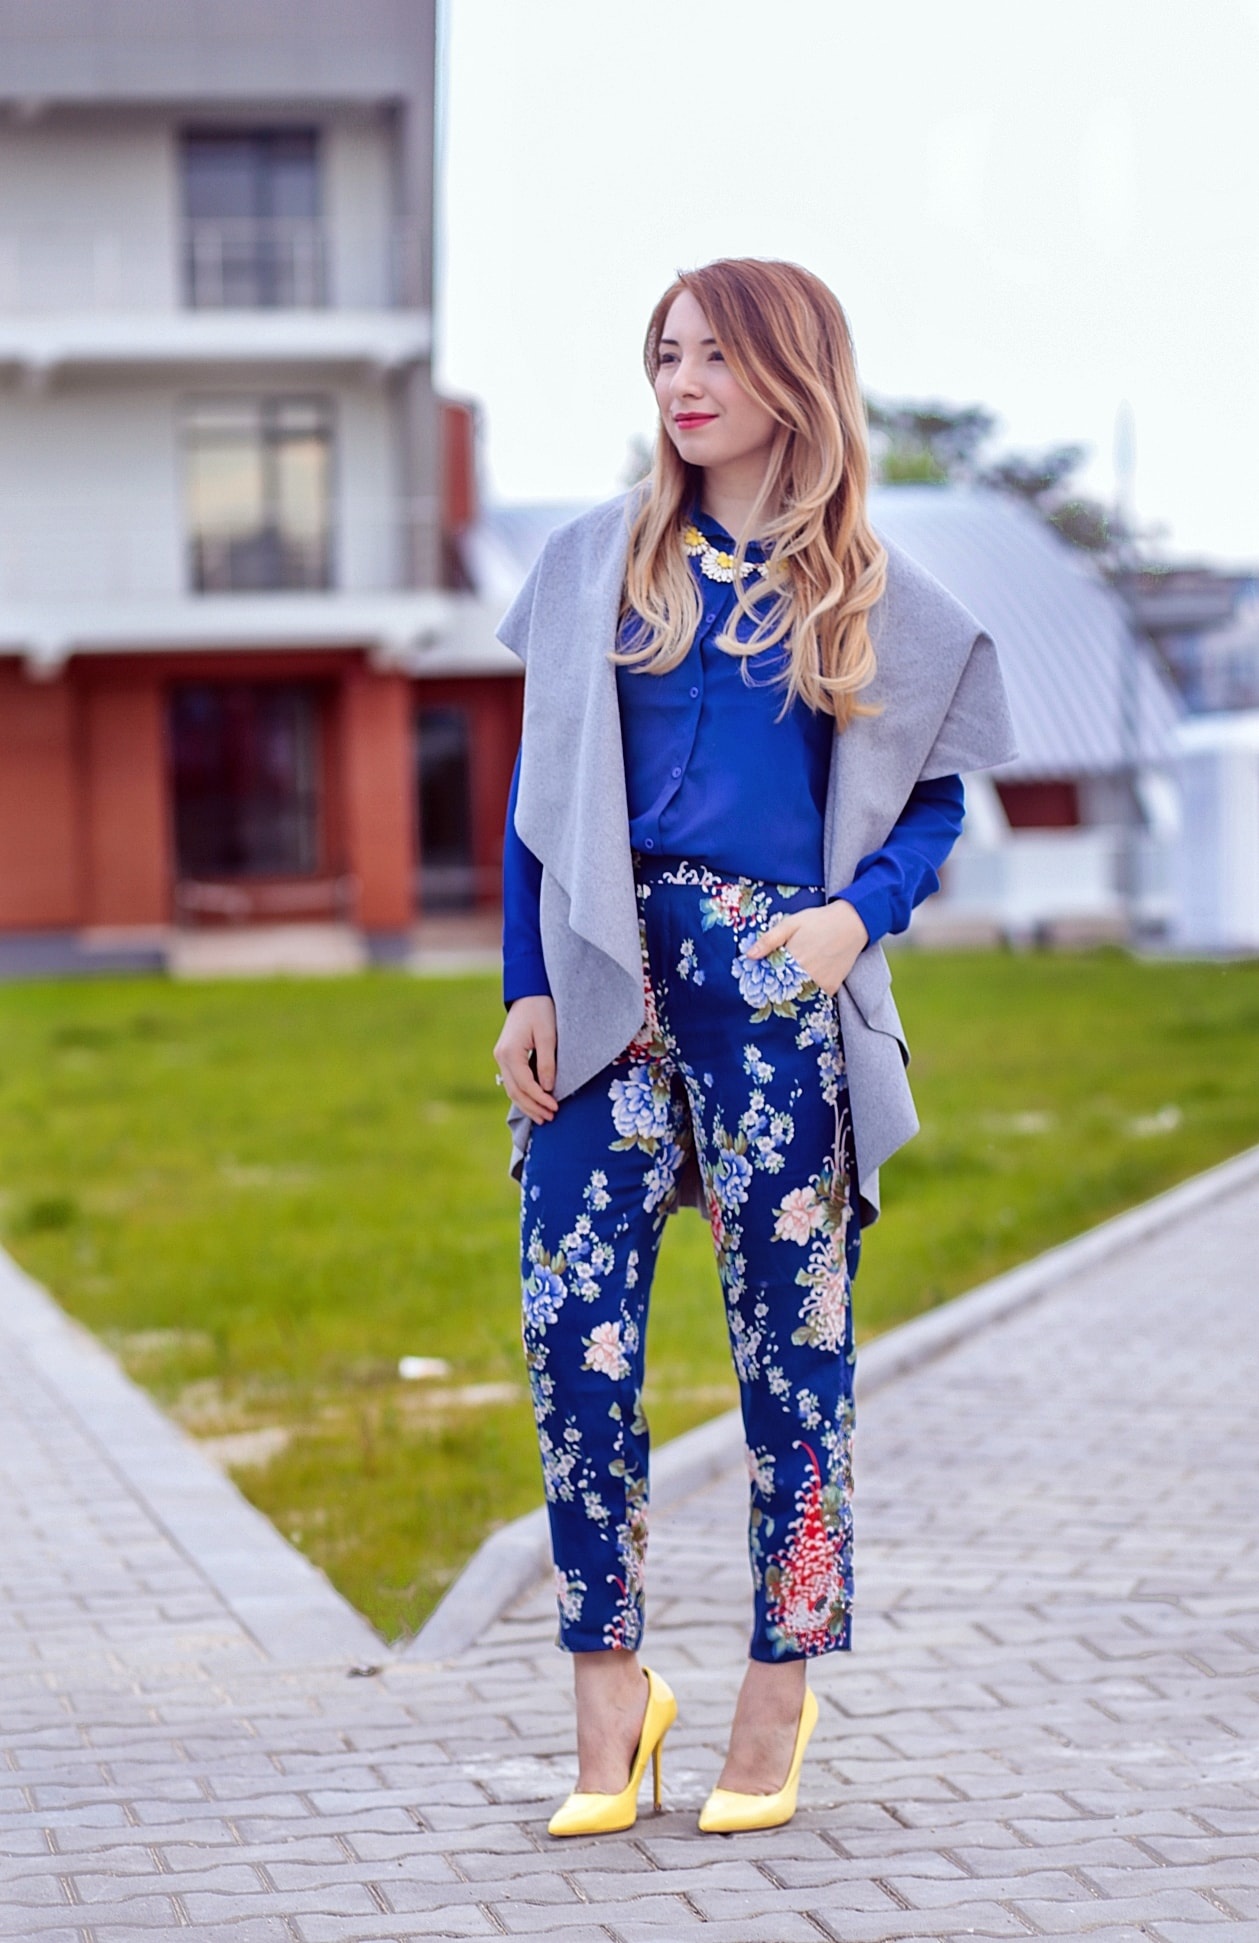 Street style, floral print pants, blue pants, blue shirt, grey oversized vest, romwe, yellow shoes, stiletto, heels, andreea ristea, fashion, blogger